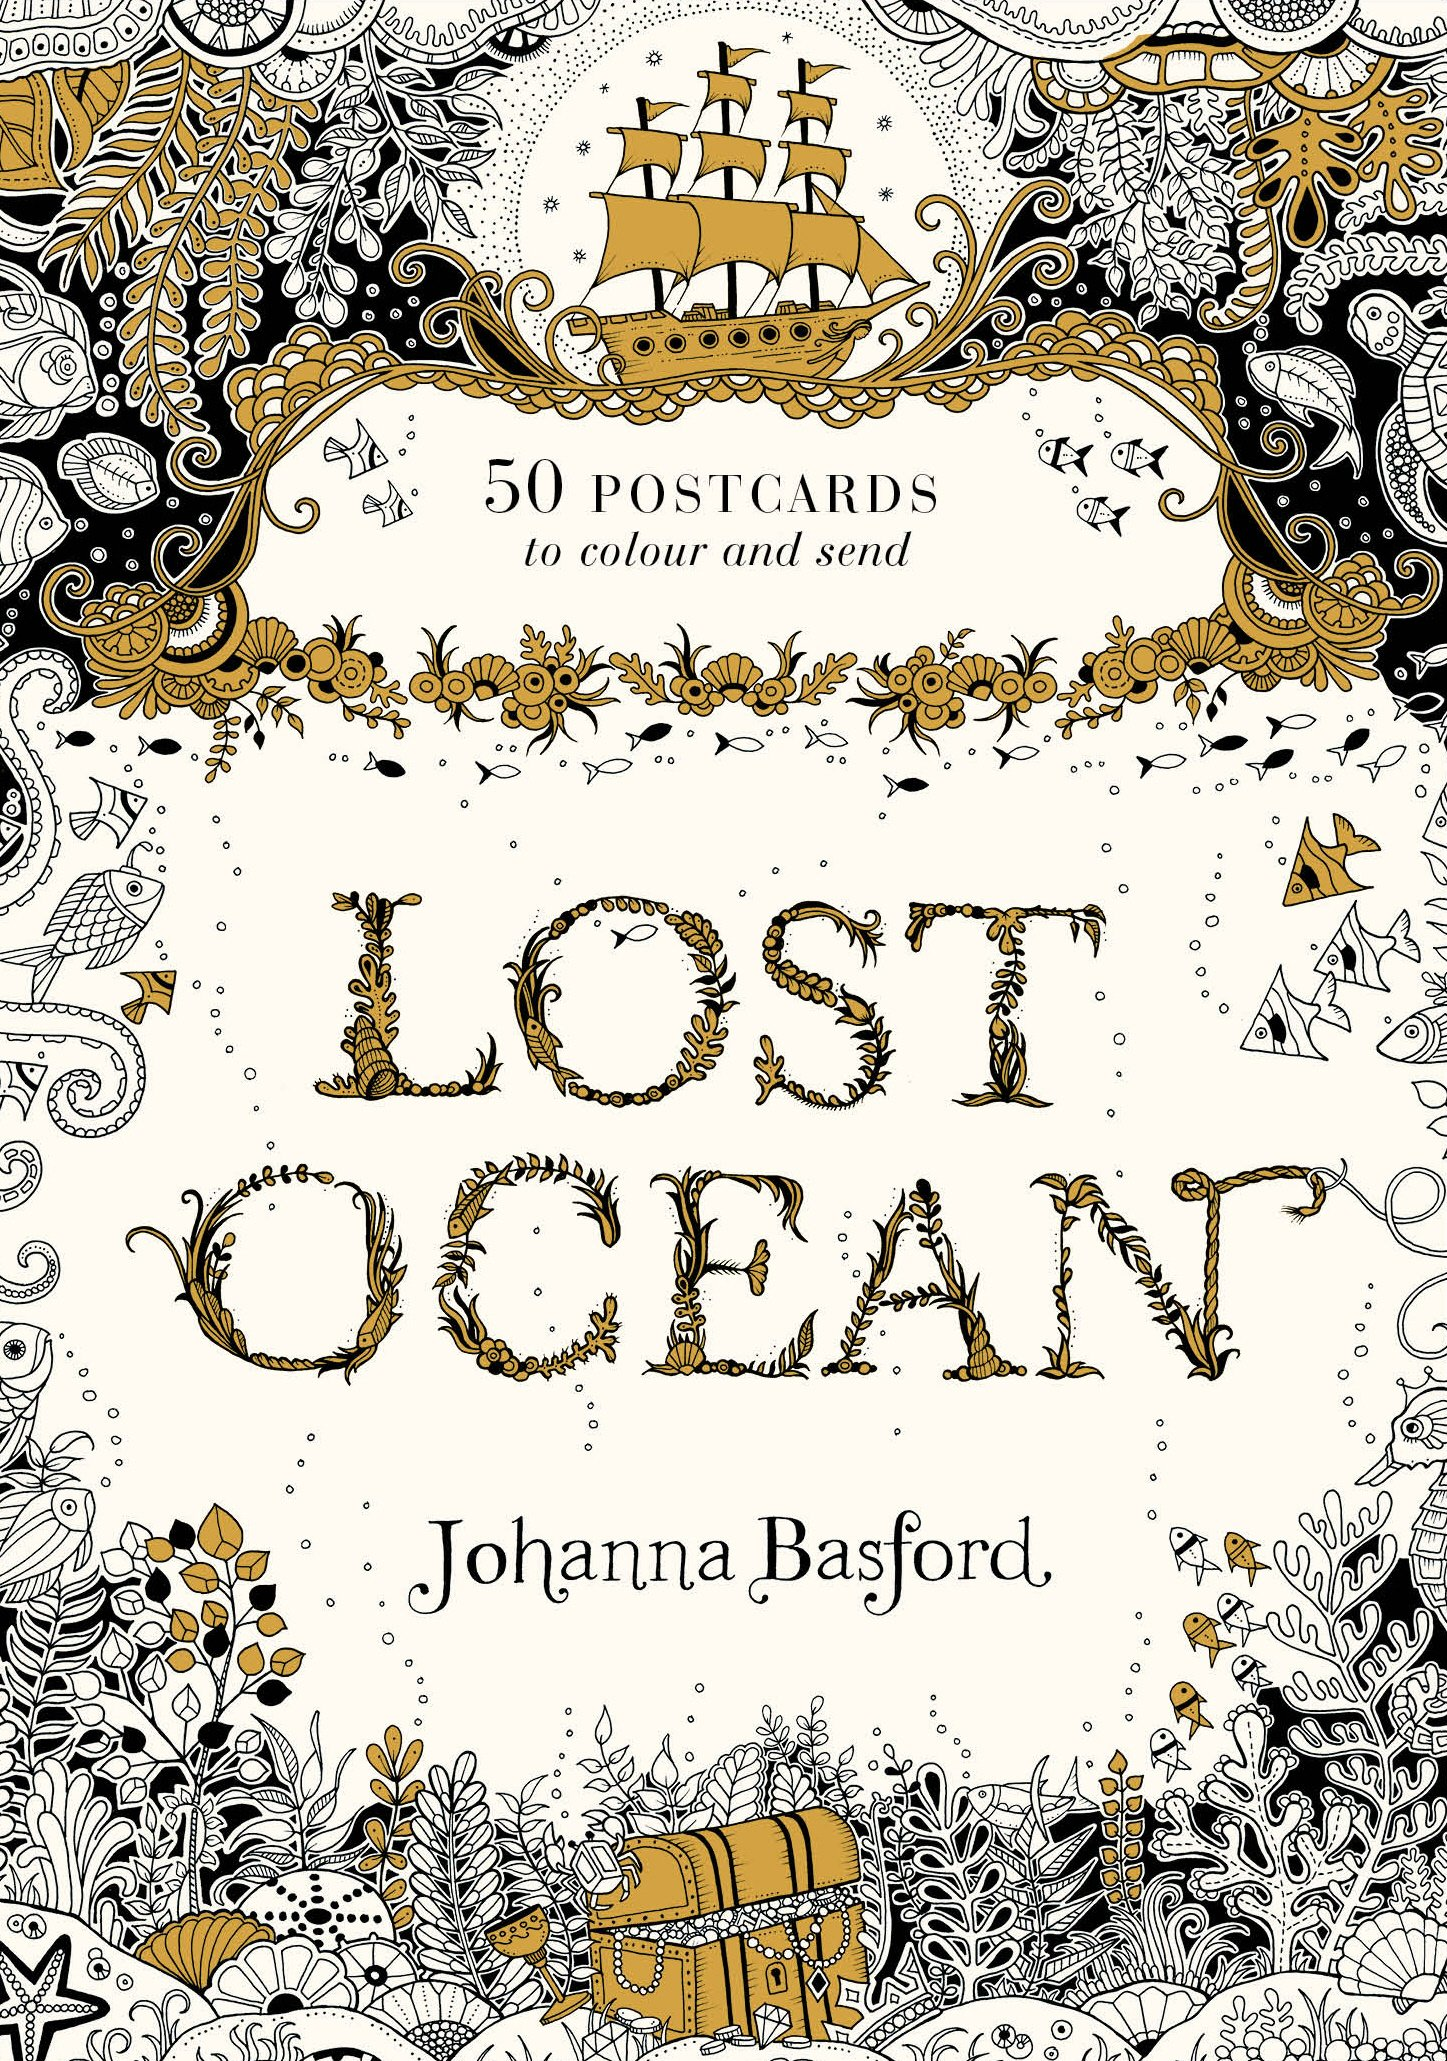 Lost Ocean Postcard Edition: 50 Postcards to Colour and Send celtic patterns to colour